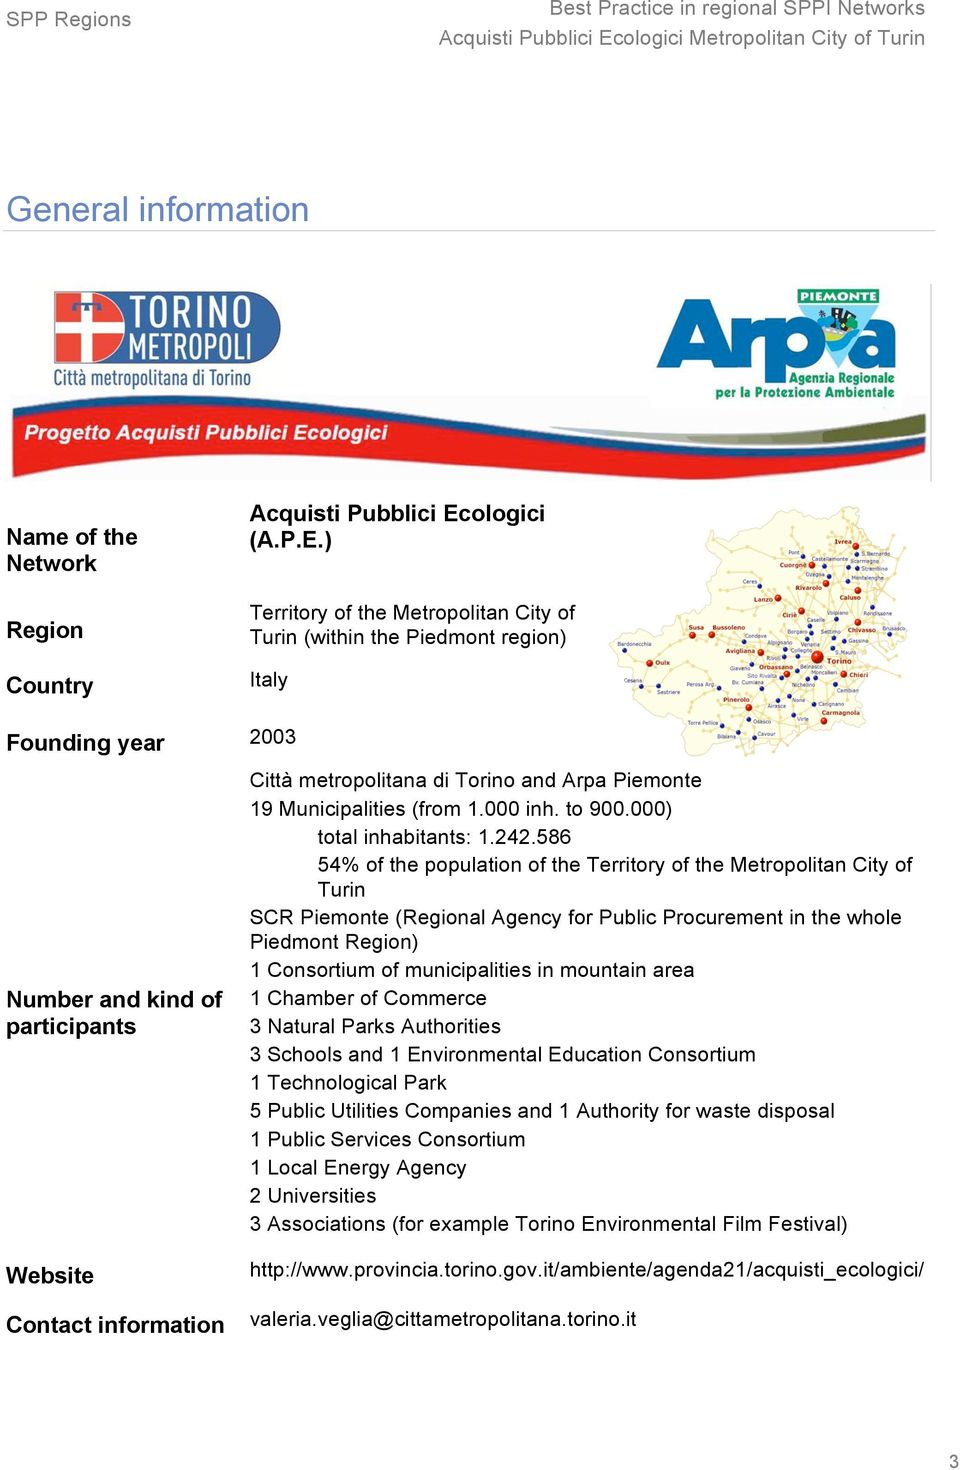 ) Region Territory of the Metropolitan City of Turin (within the Piedmont region) Country Italy Founding year 2003 Number and kind of participants Città metropolitana di Torino and Arpa Piemonte 19